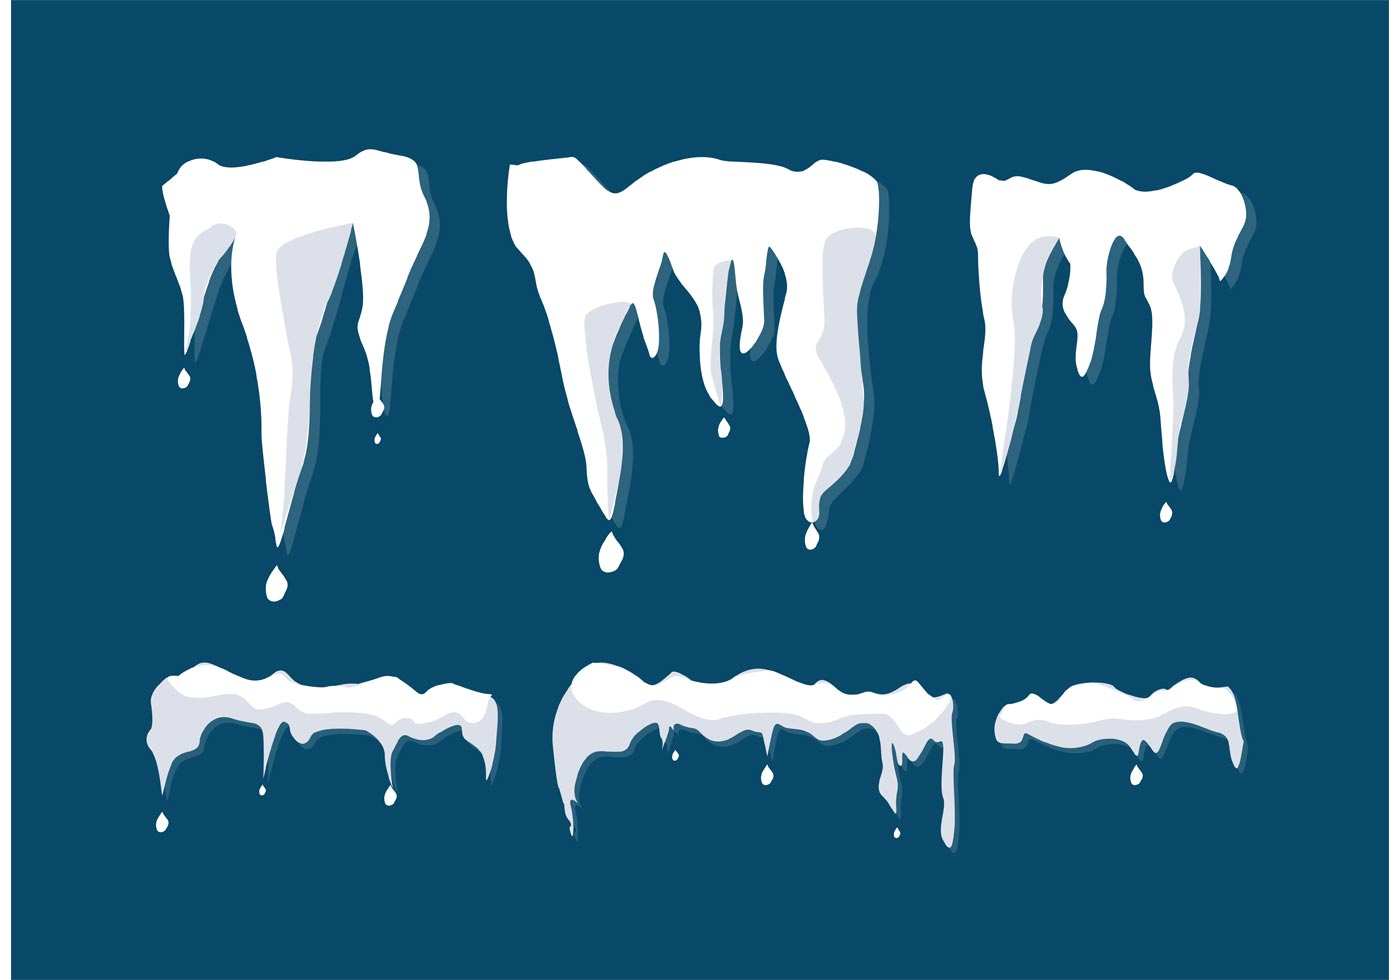 Melting Snow Vectors Download Free Vector Art Stock